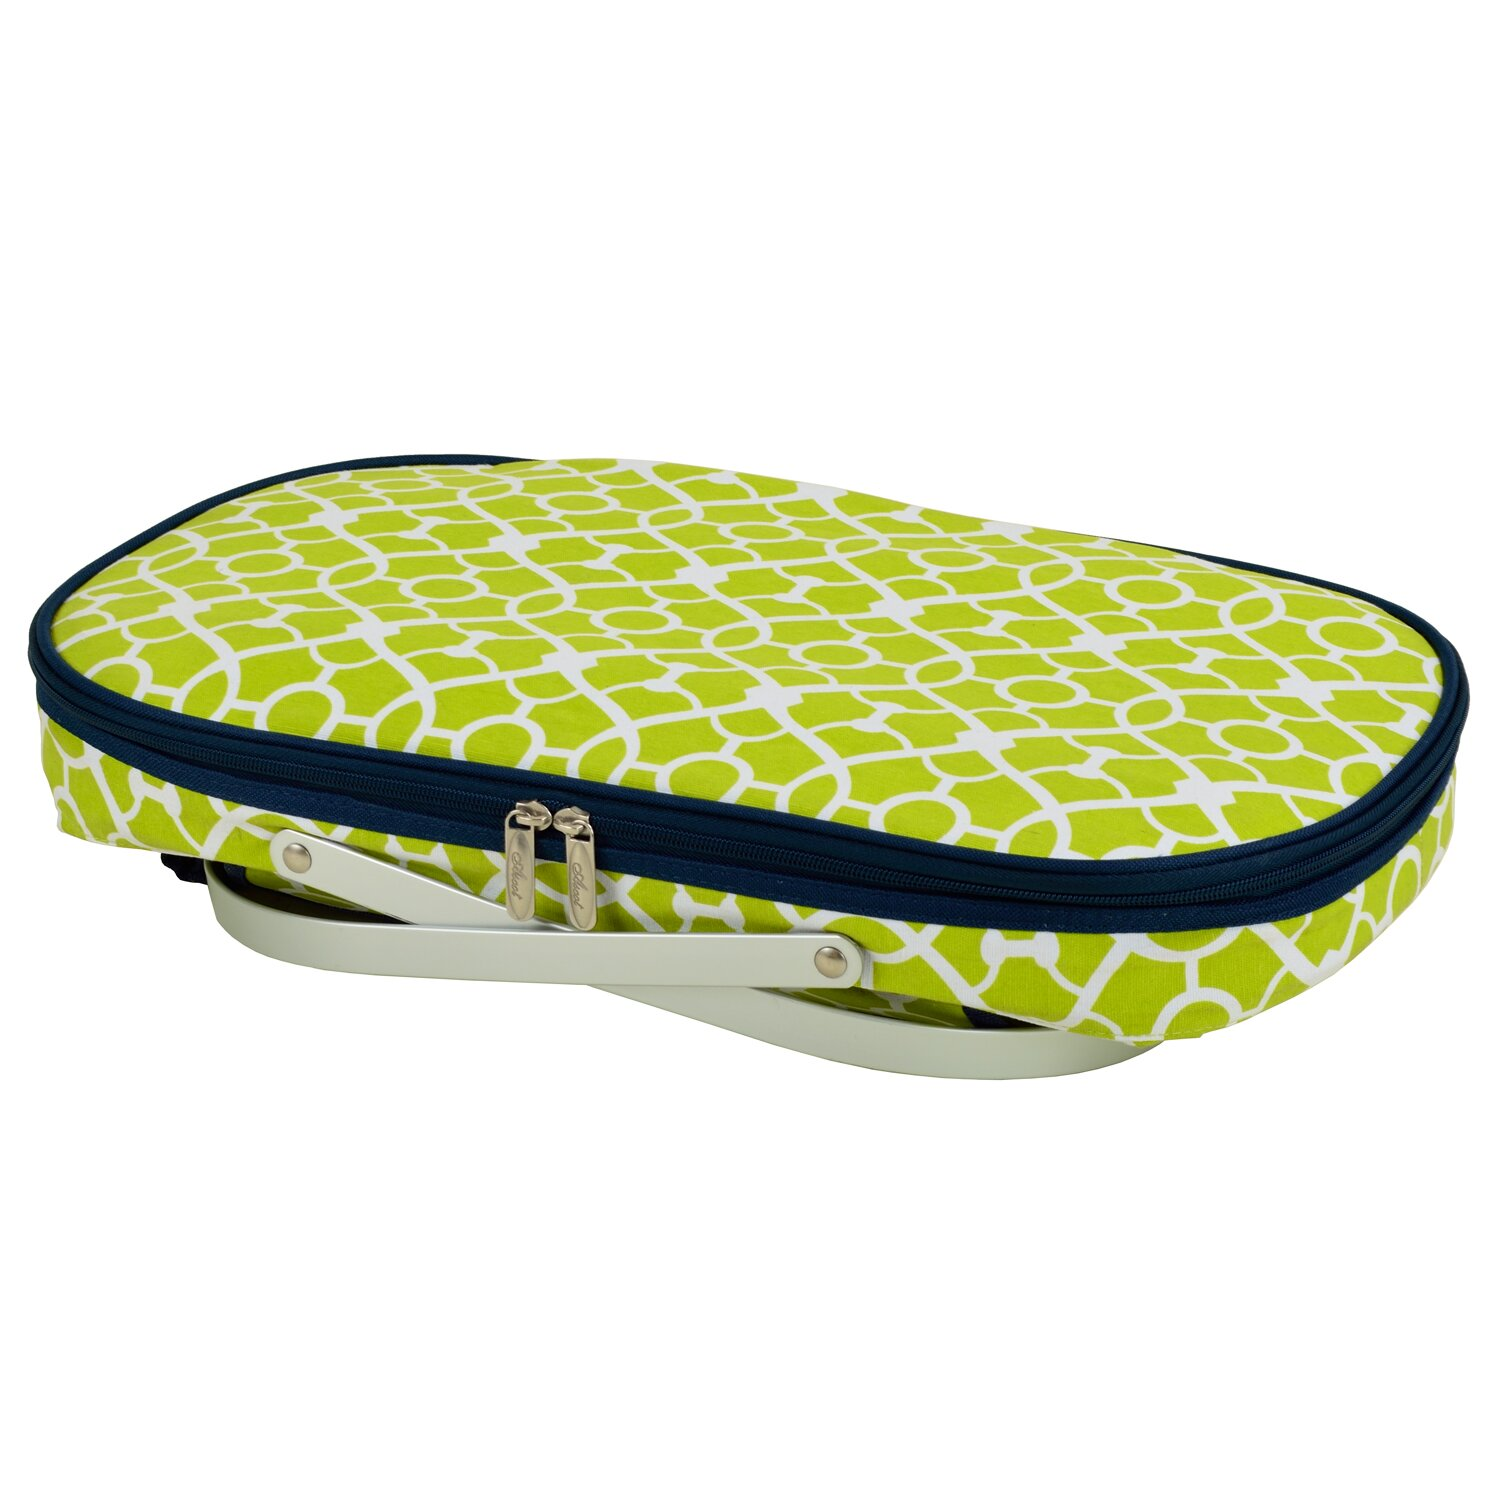 Picnic At Ascot Collapsible Insulated Picnic Basket For 4 : Picnic at ascot trellis collapsible insulated basket